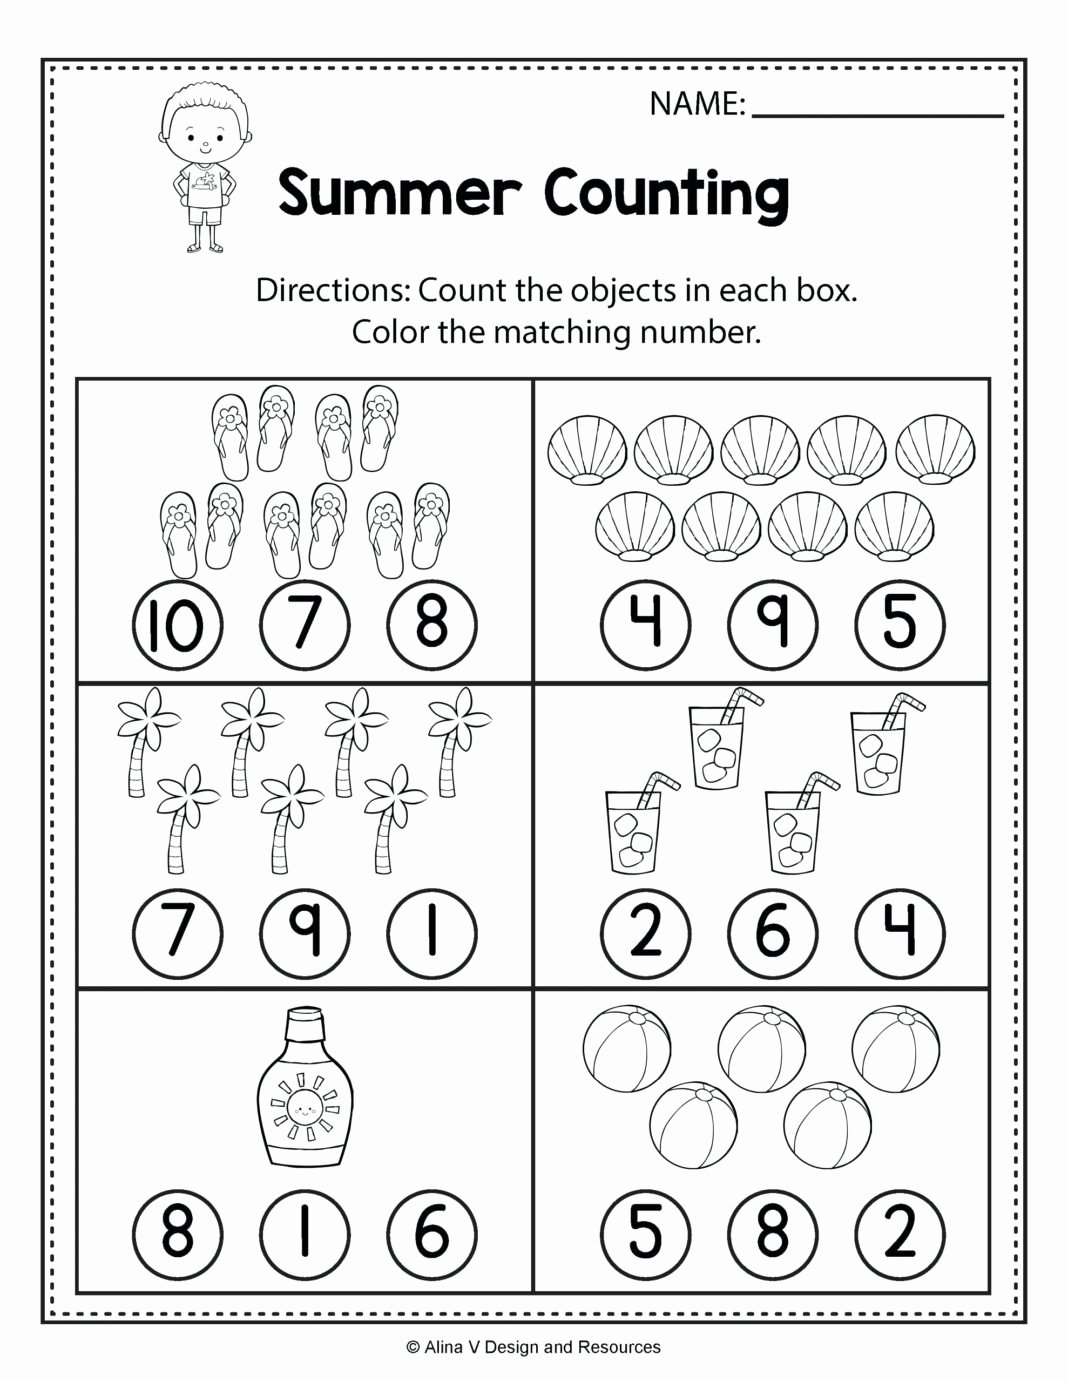 Worksheets for Preschoolers Numbers Inspirational Worksheets Printable Preschool Worksheets Number